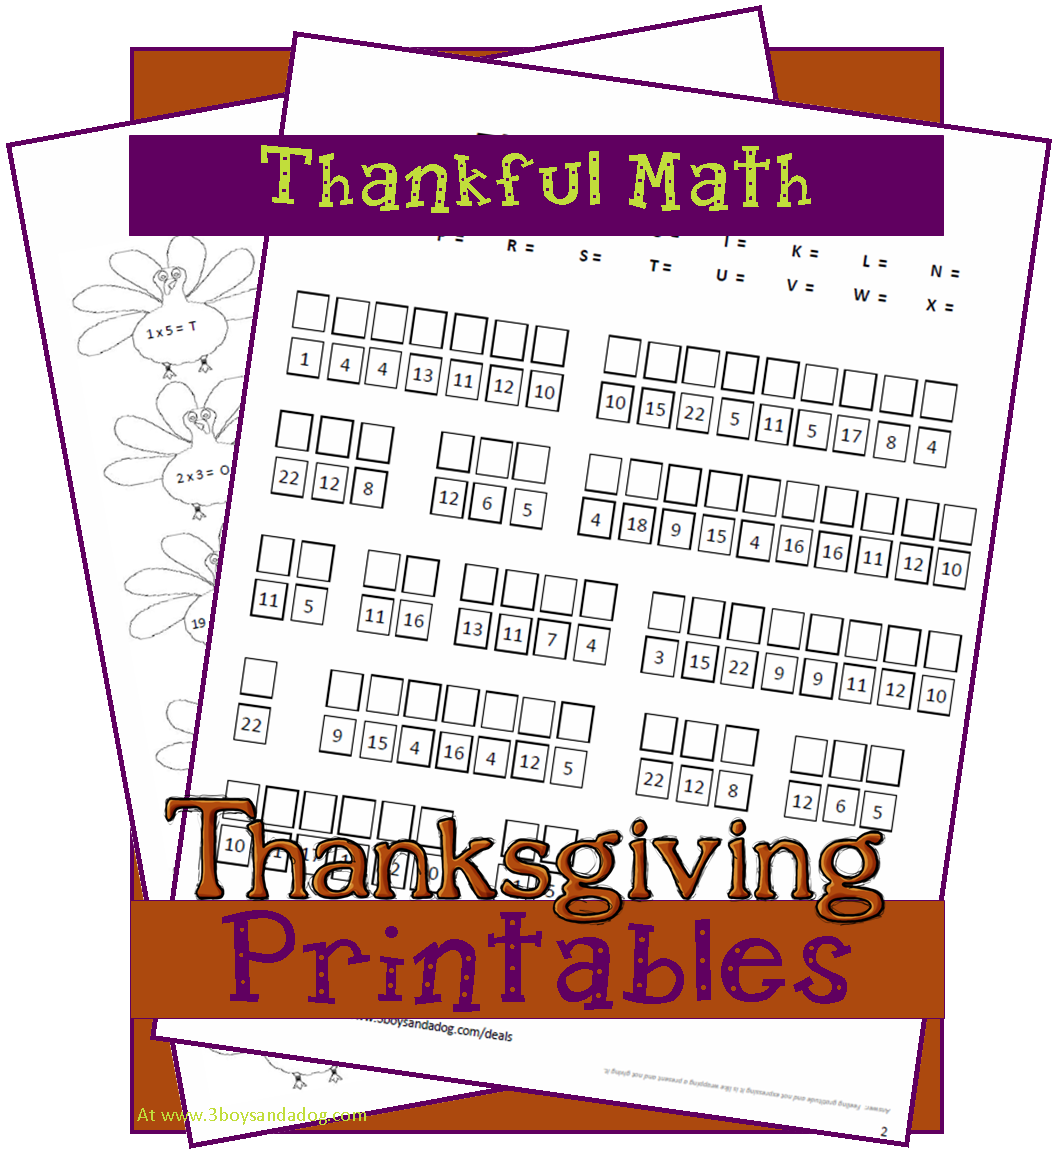 Free Homeschool Printable Thankful Math Reader Request